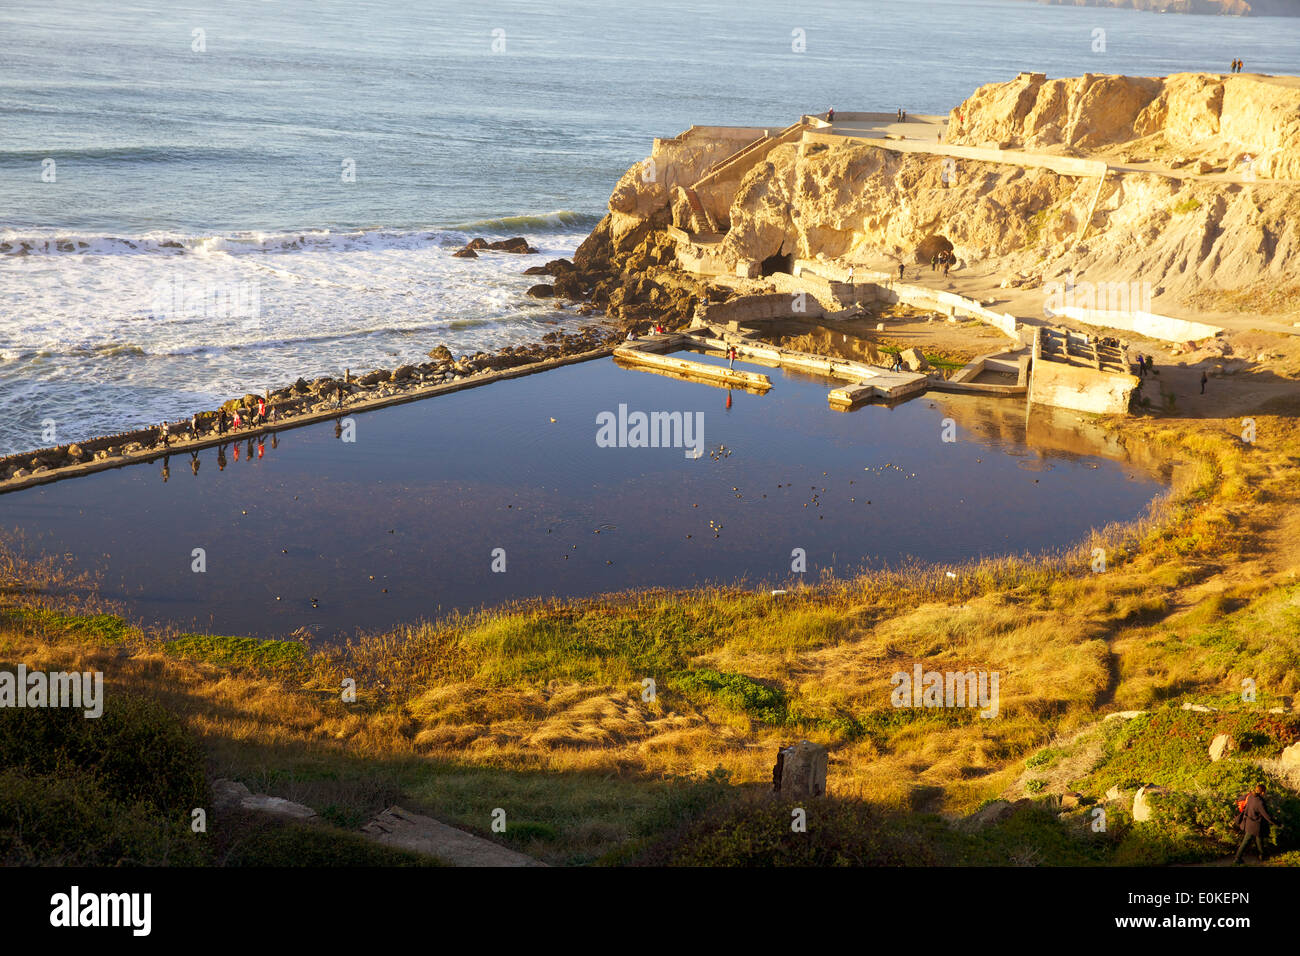 People walk in a single file line along the sea wall at the Sutro Bath Ruins at Lands End in San Francisco, California. - Stock Image